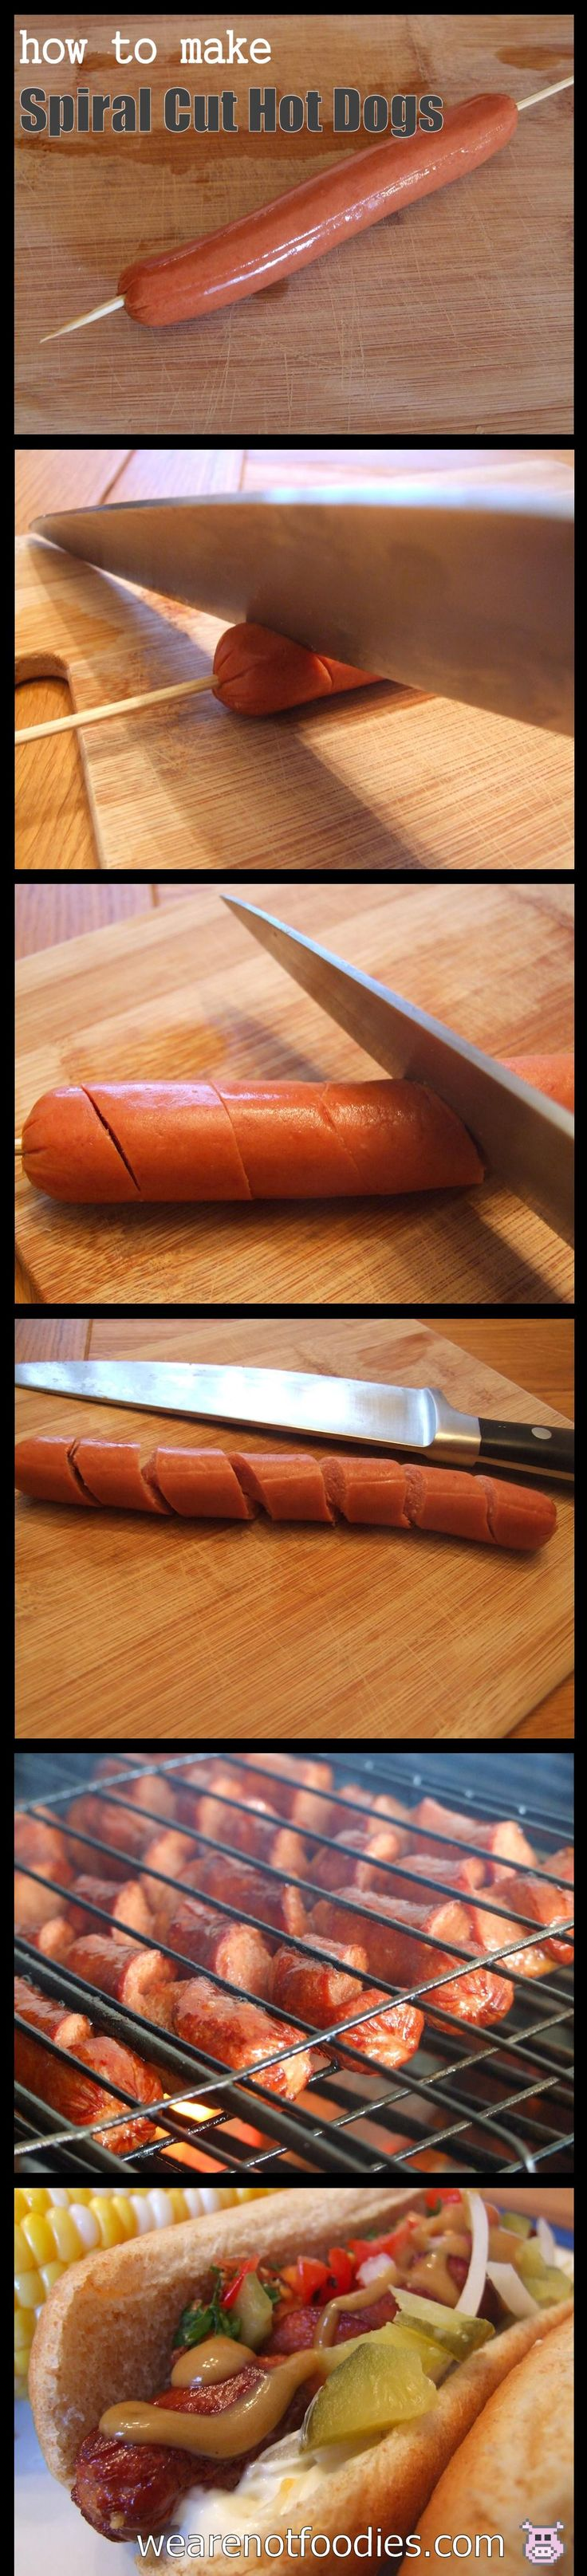 Step by Step Photo Guide for Making Spiral Cut Hot Dogs!